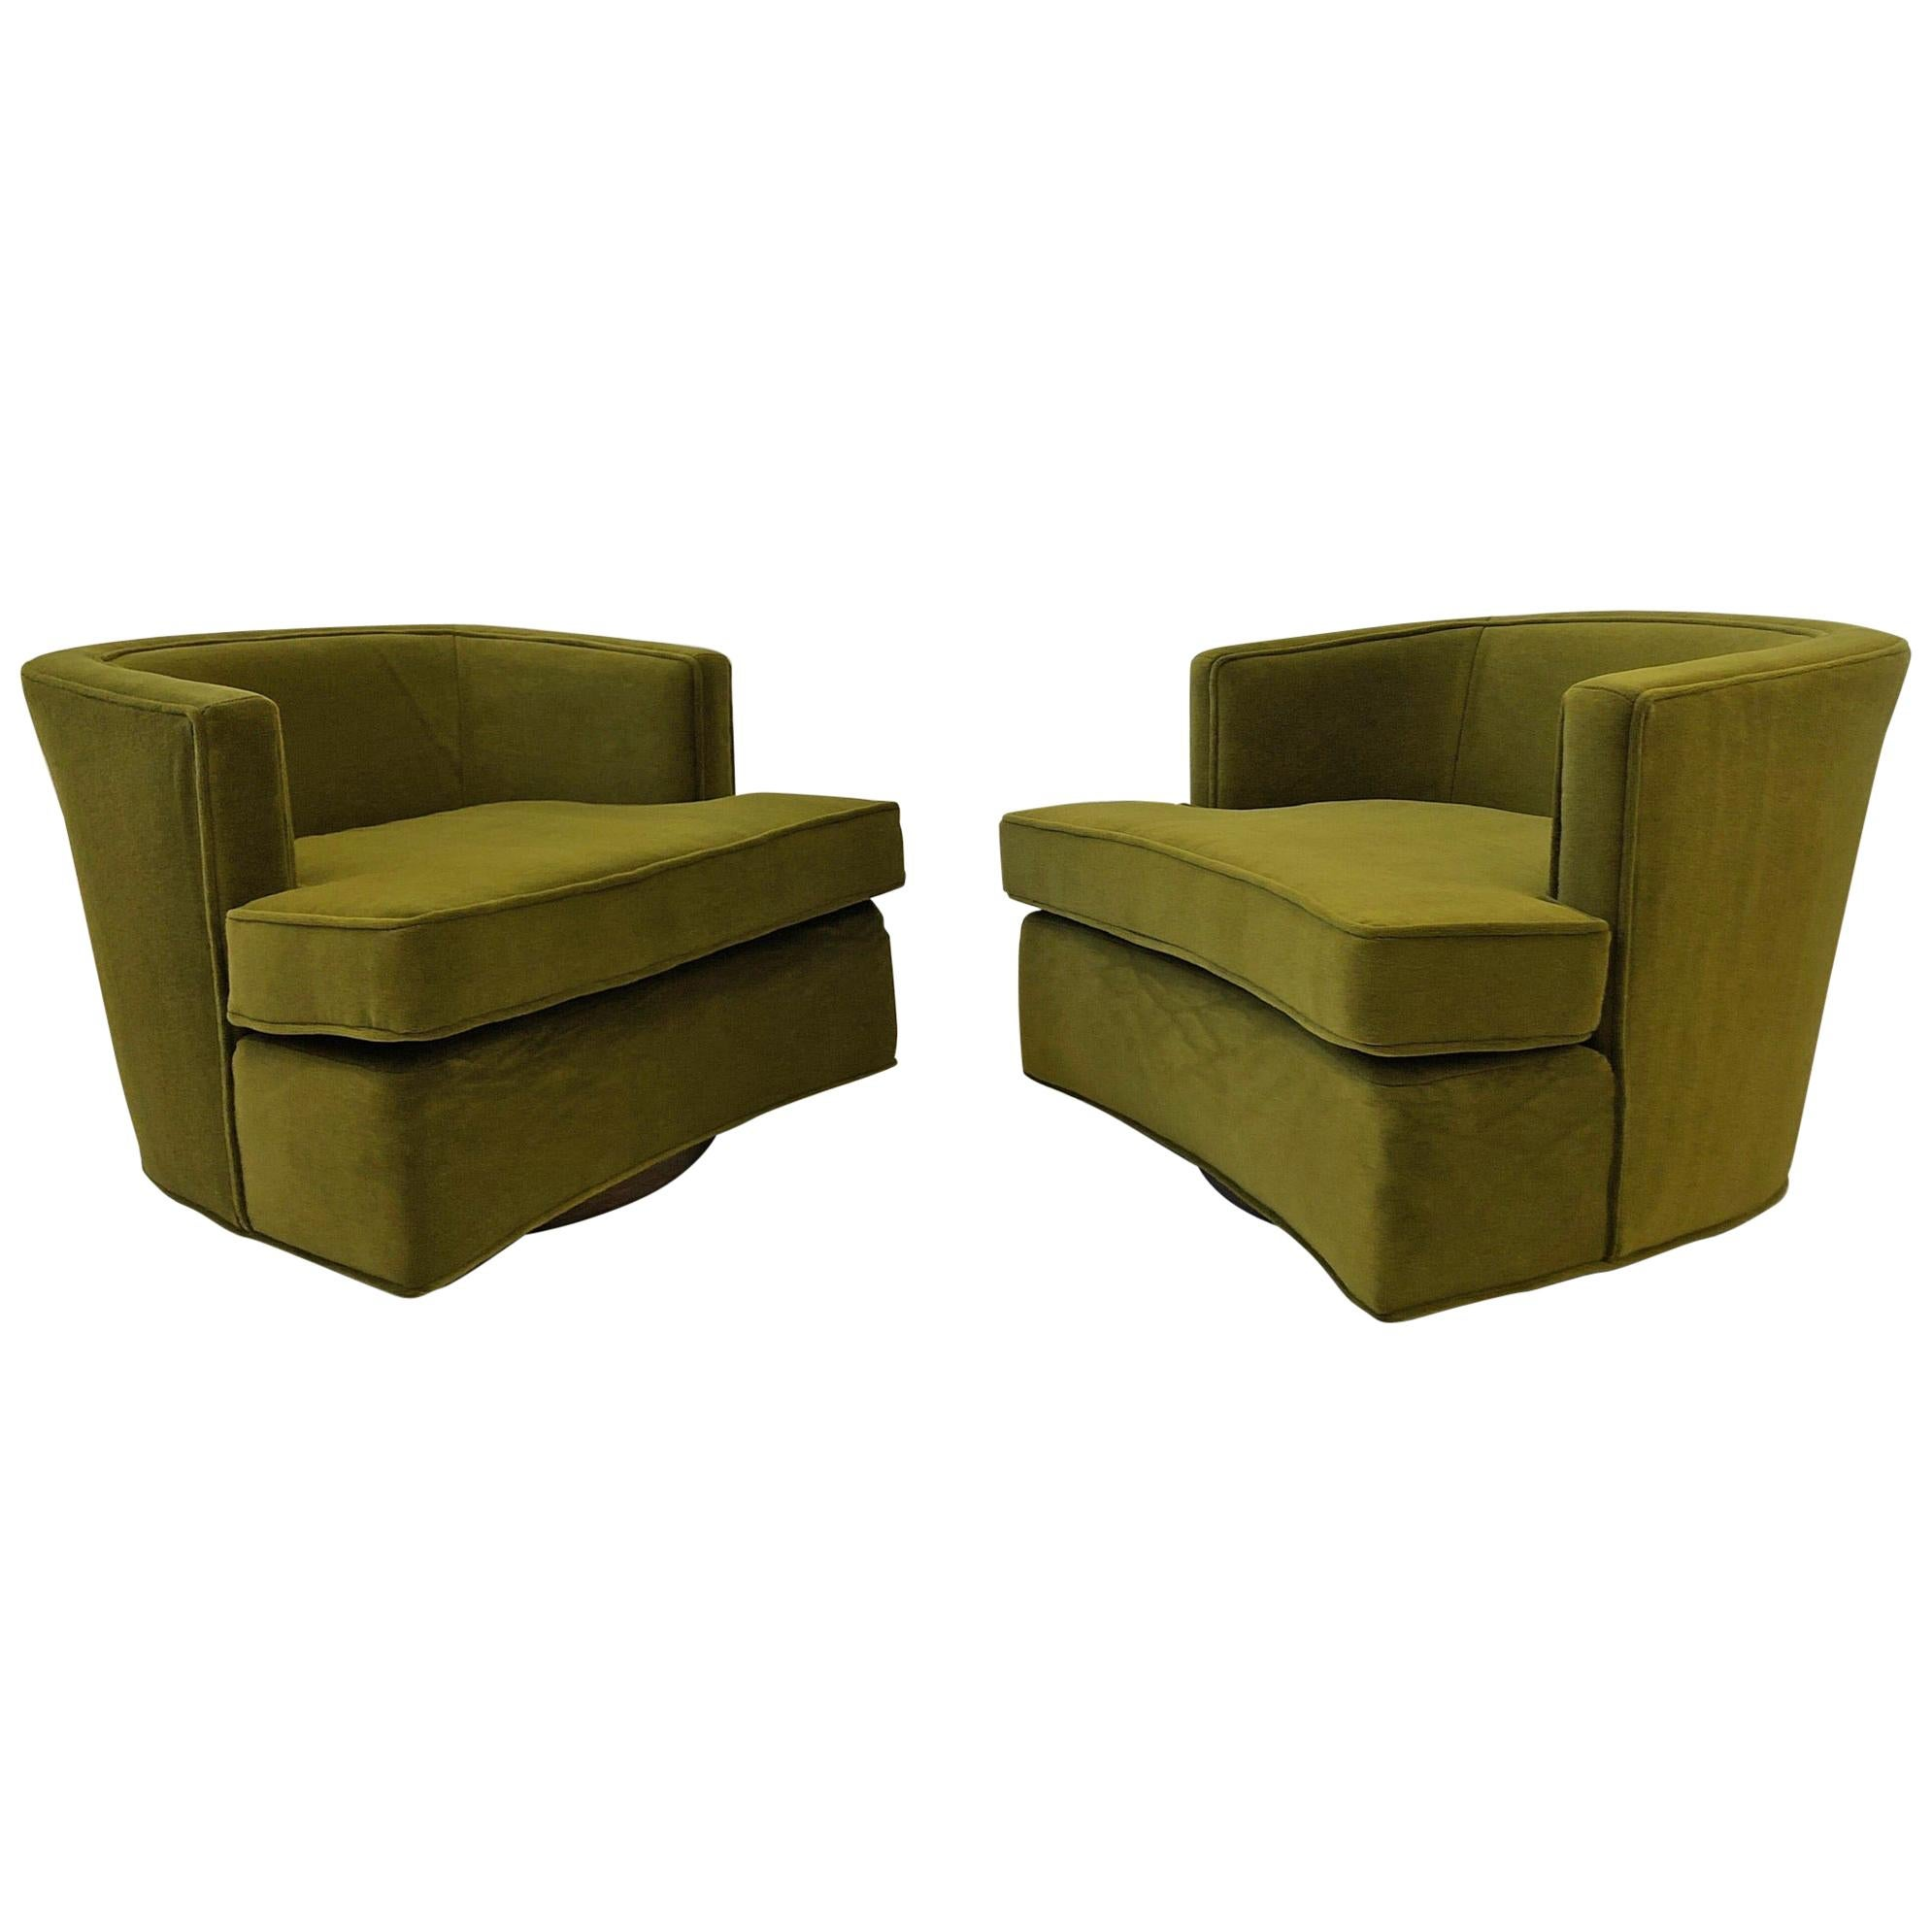 Pair of Olive Green Mohair Swivel Lounge Chairs by Harvey Probber